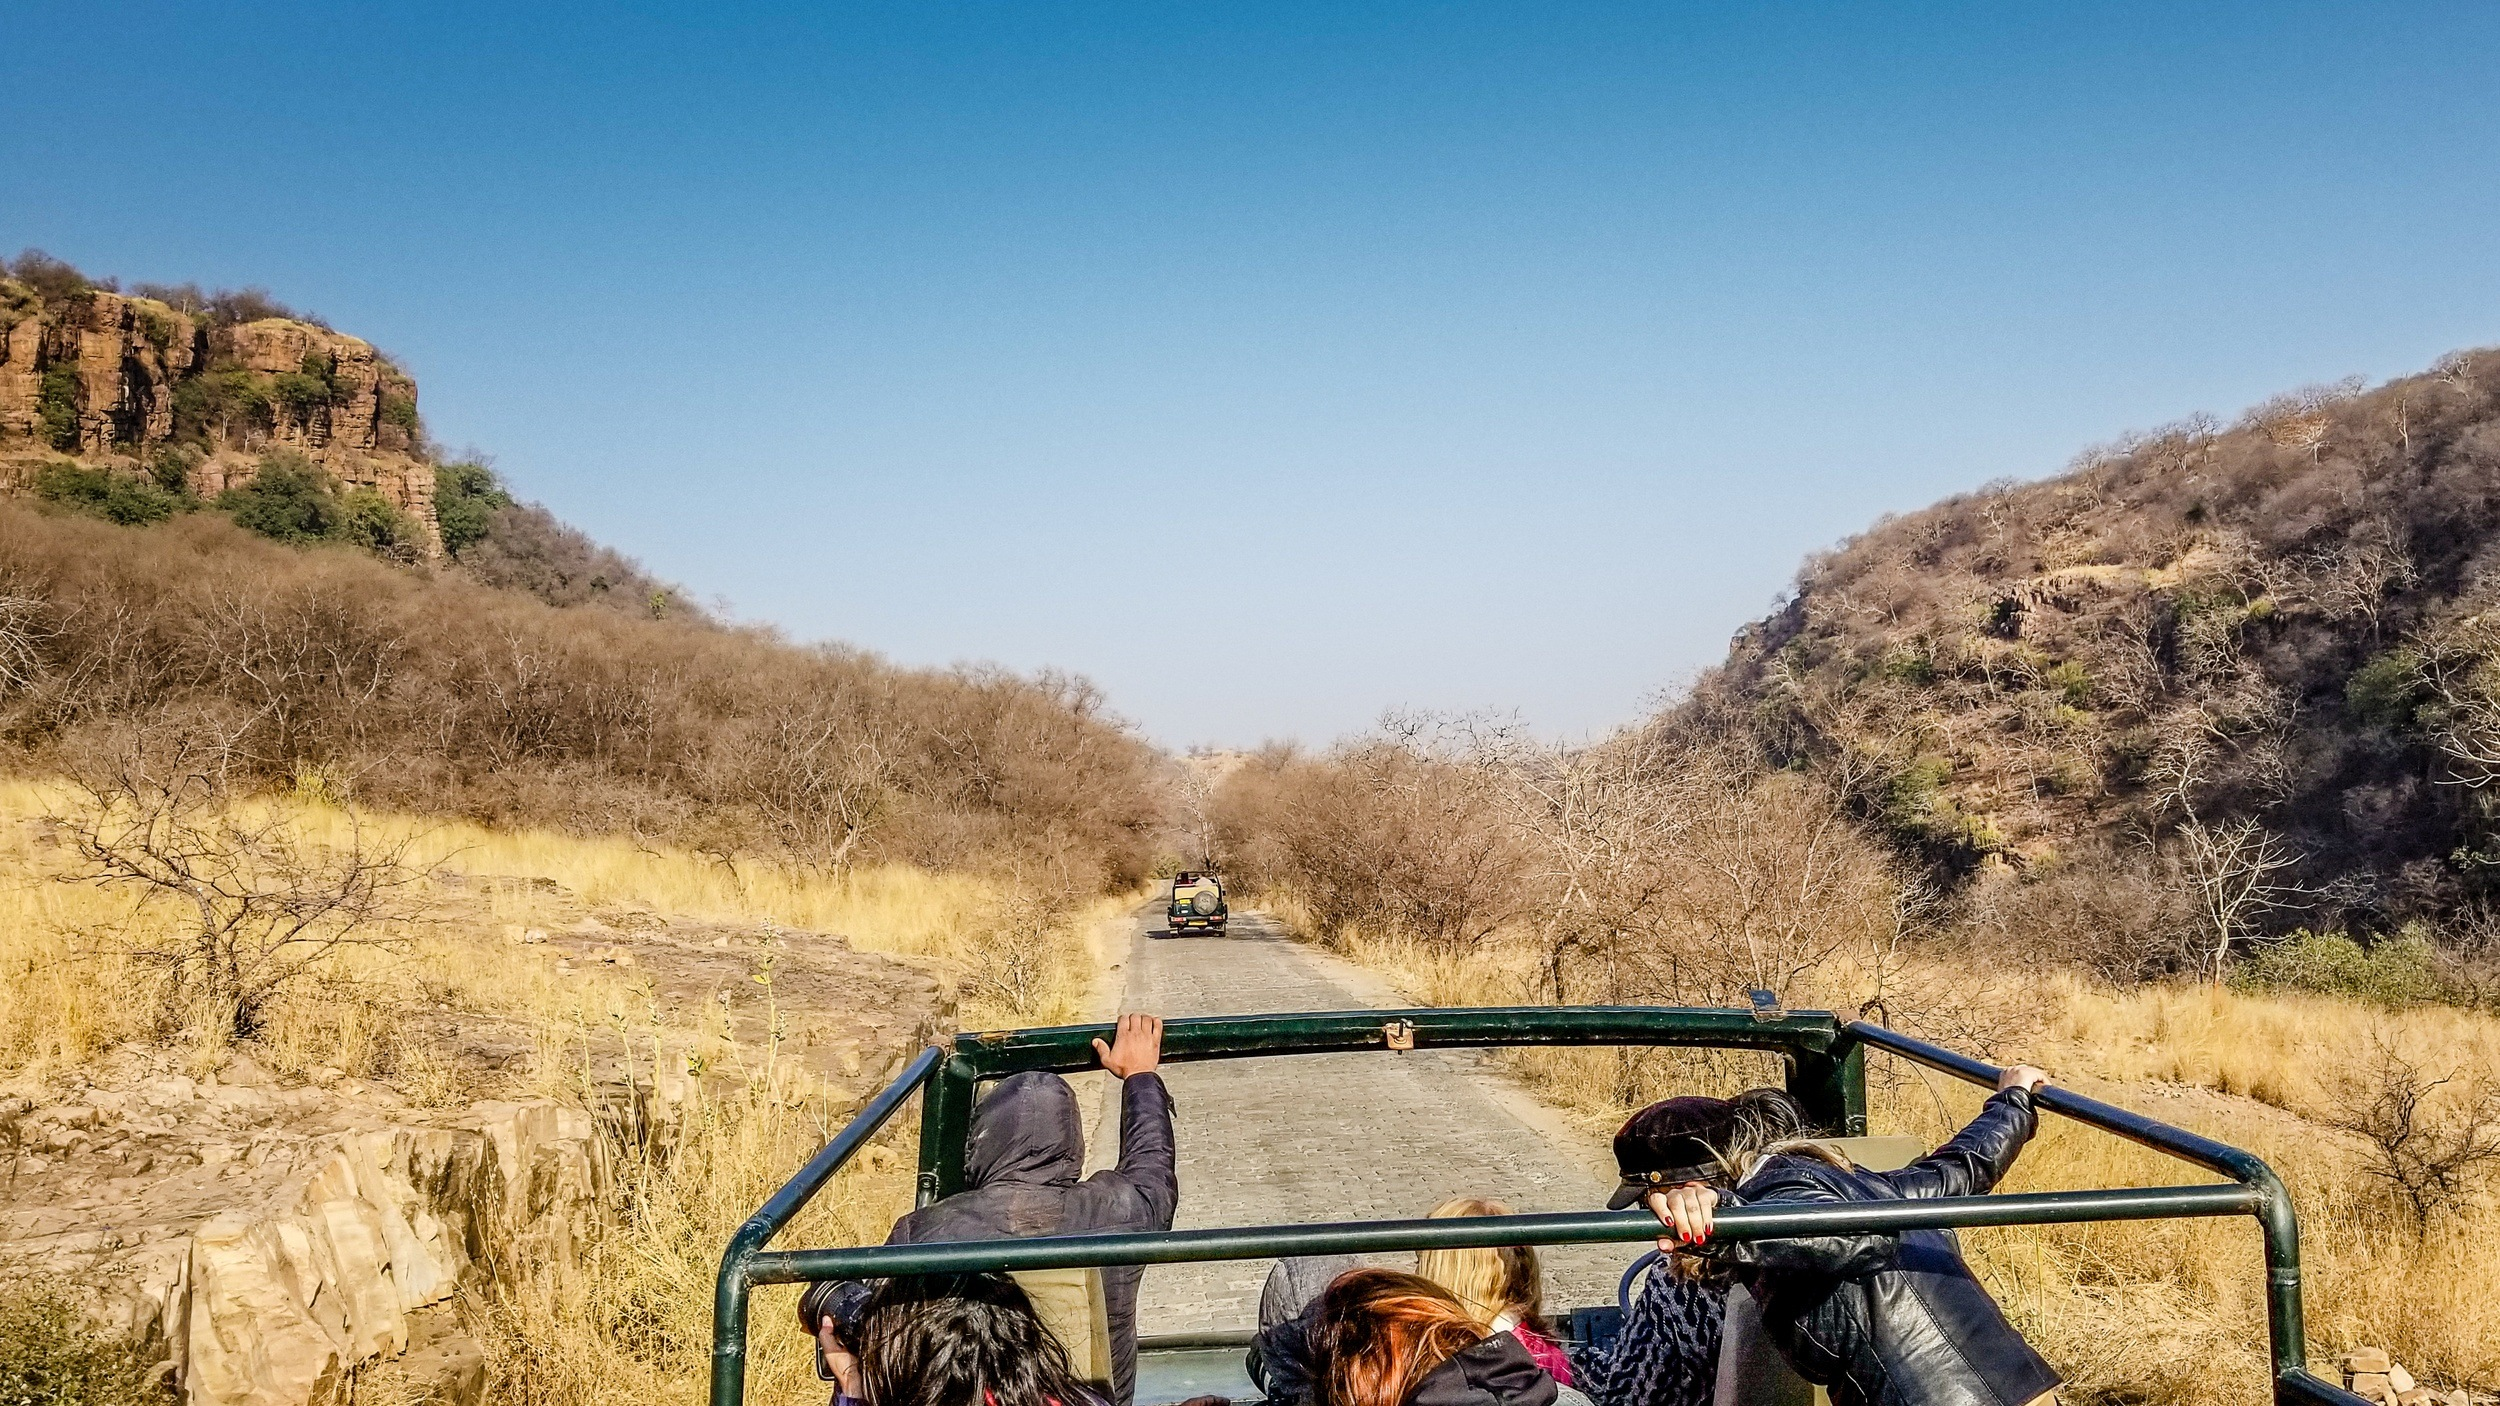 A safari in Ranthambore National Park, India